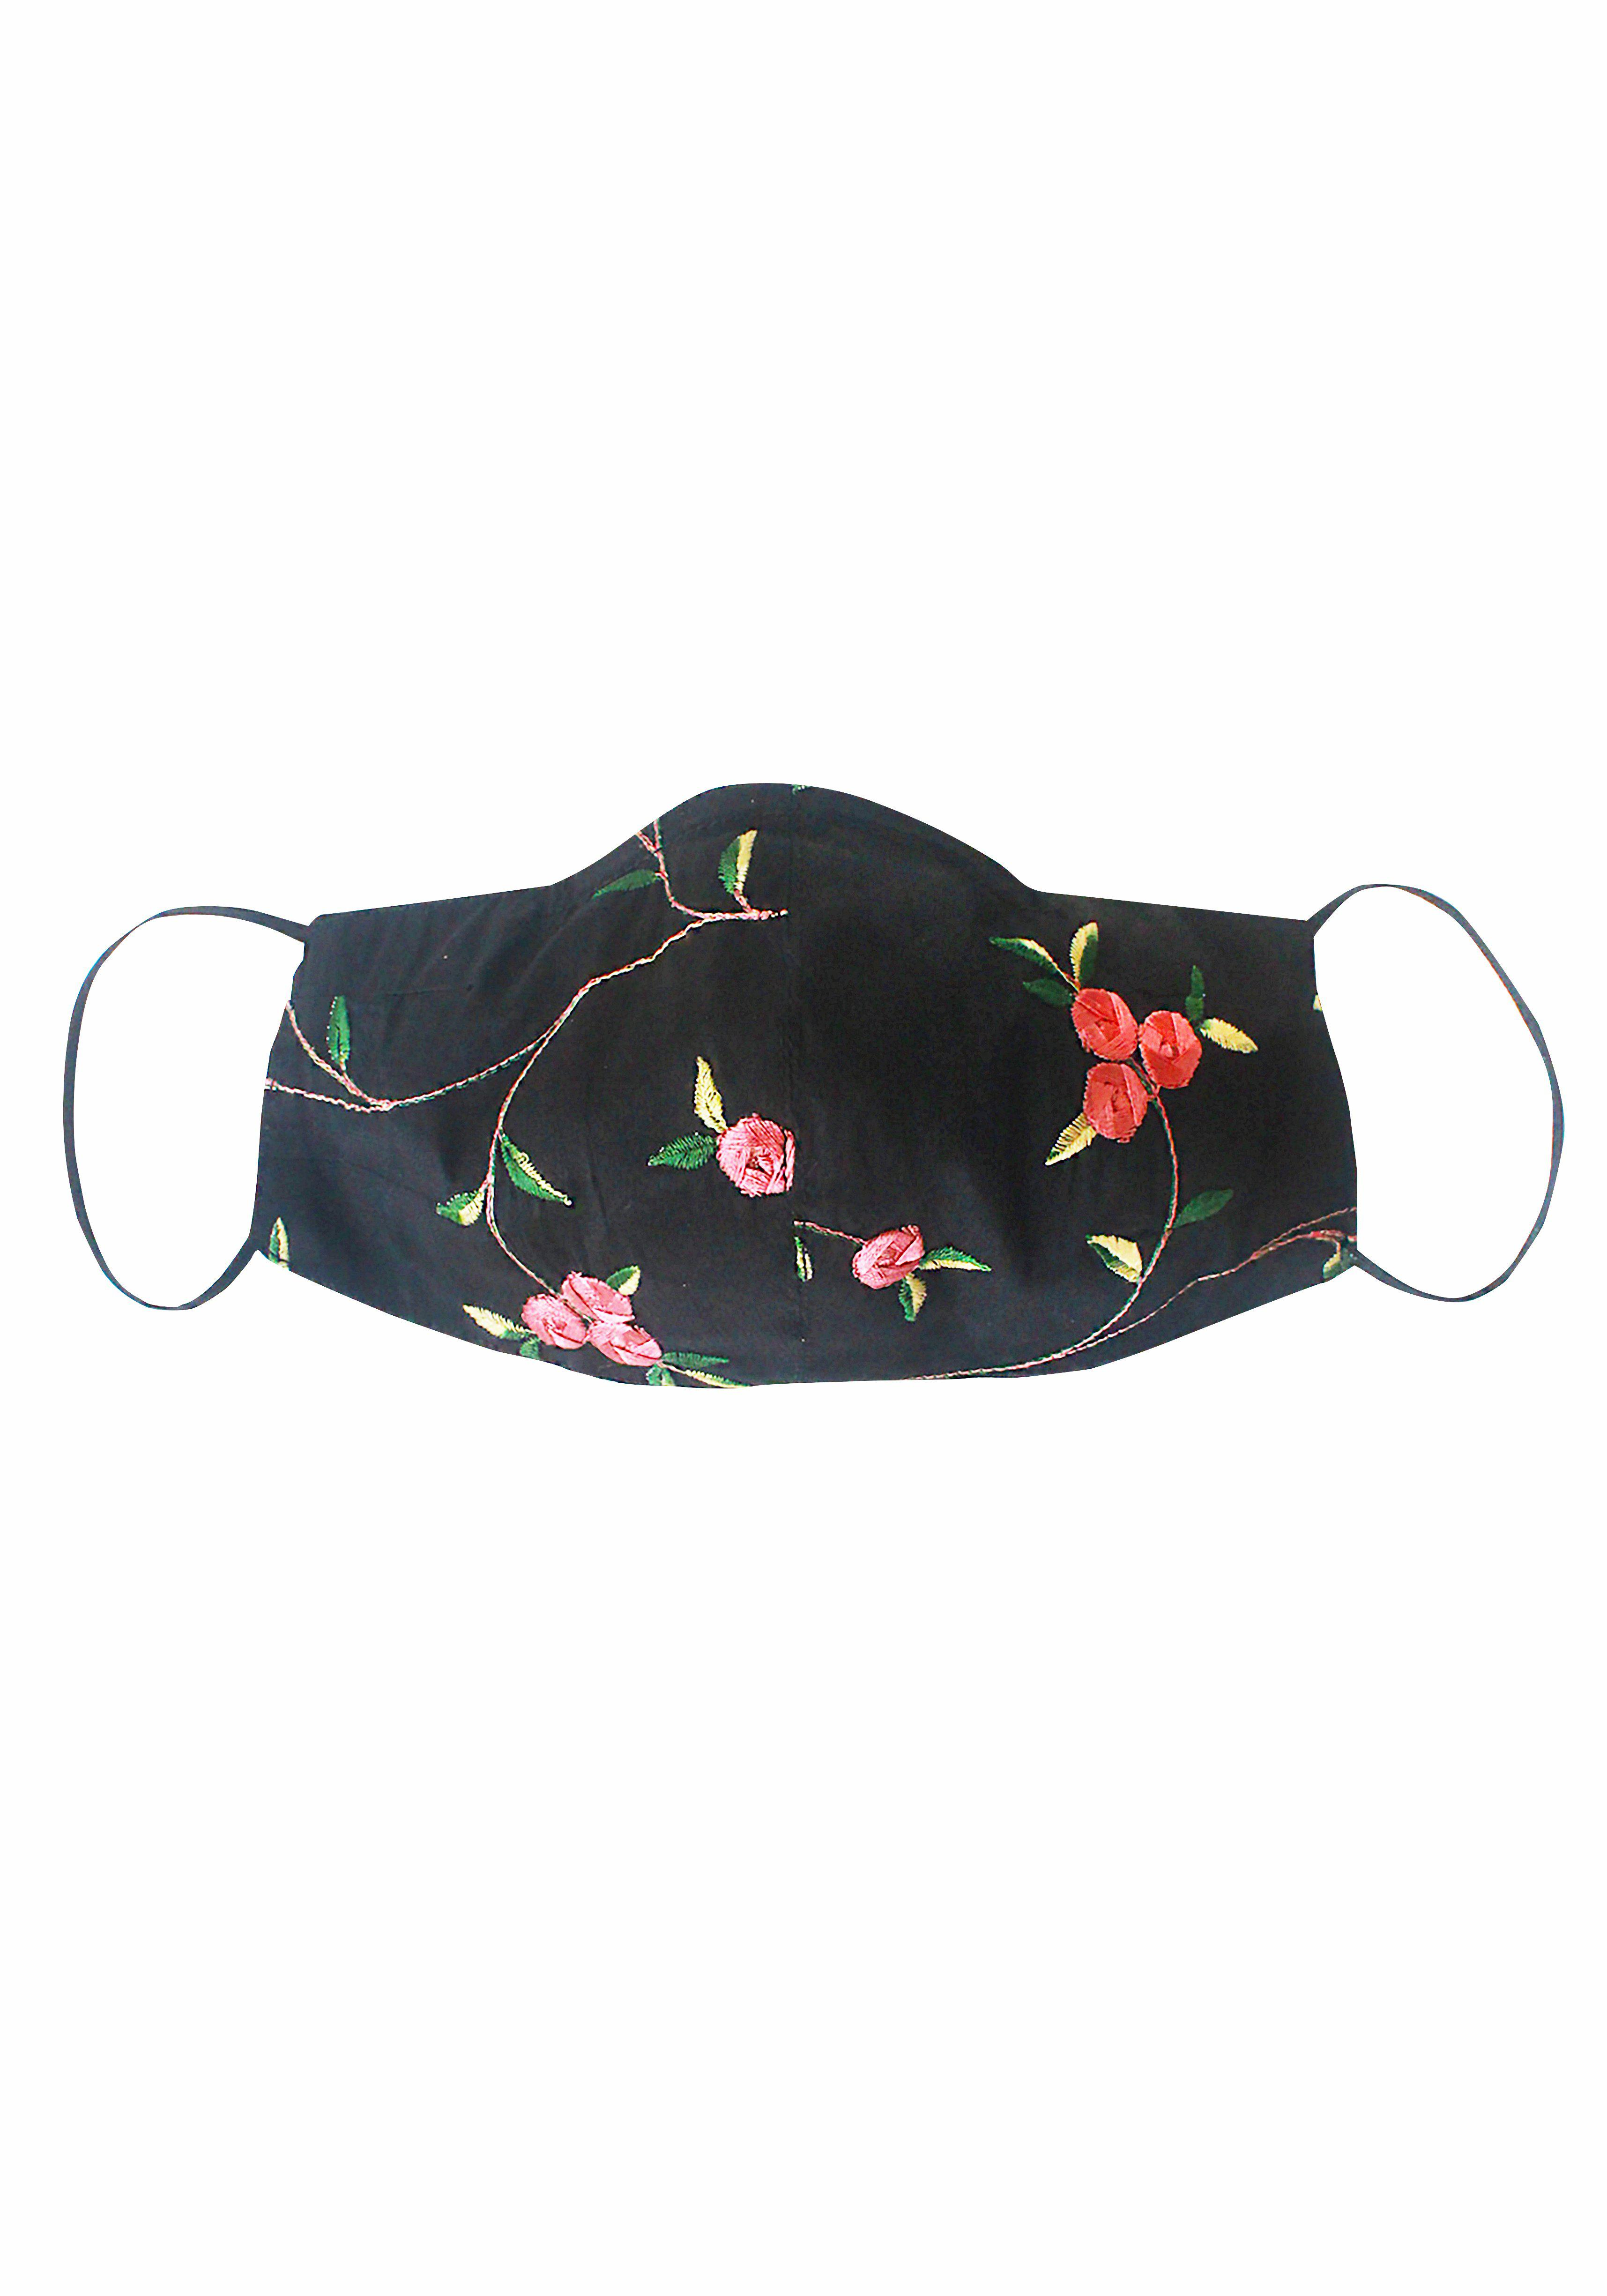 Black Floral Embroidered Mask with Silk Lining